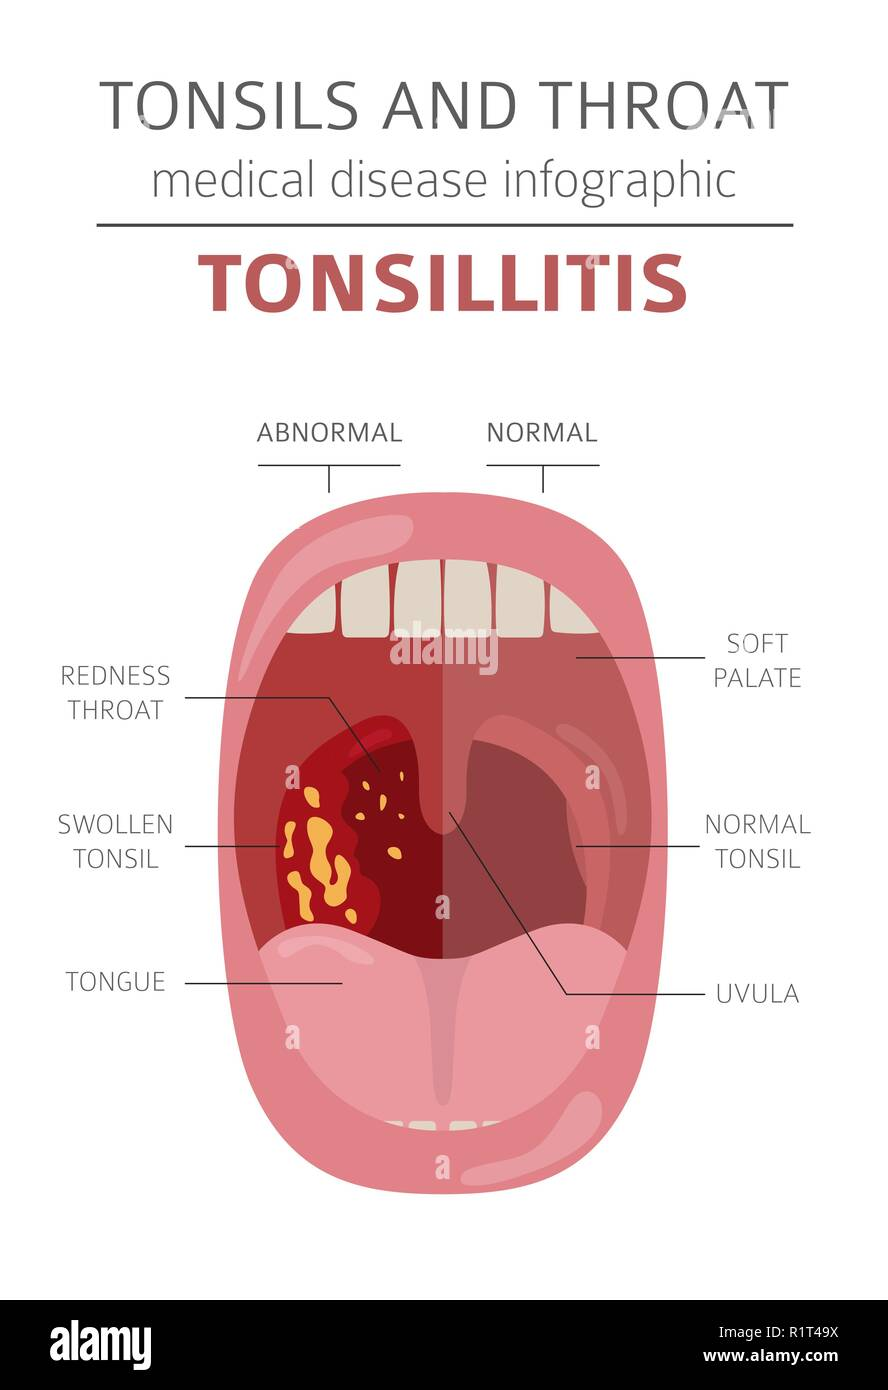 Tonsils and throat diseases. Tonsillitis symptoms, treatment icon set. Medical infographic design. Vector illustration - Stock Vector